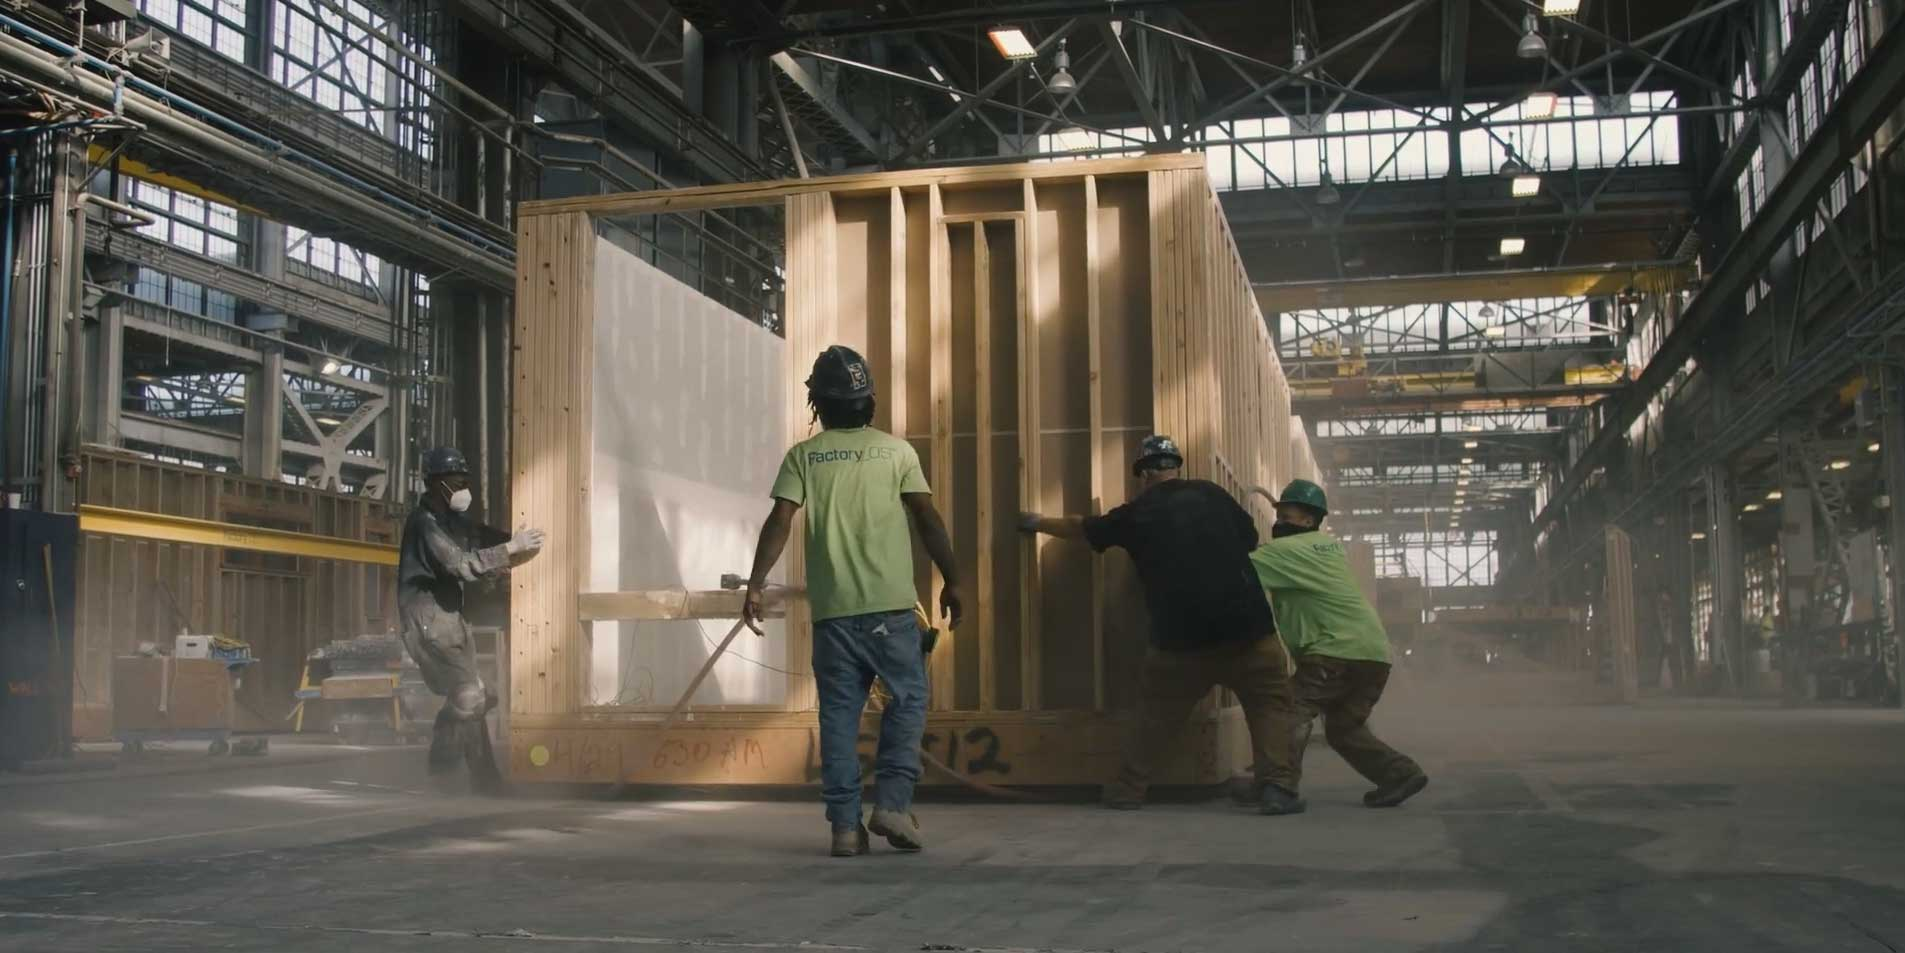 Social Distancing and PPE Help Modular Construction Company Stay Essential